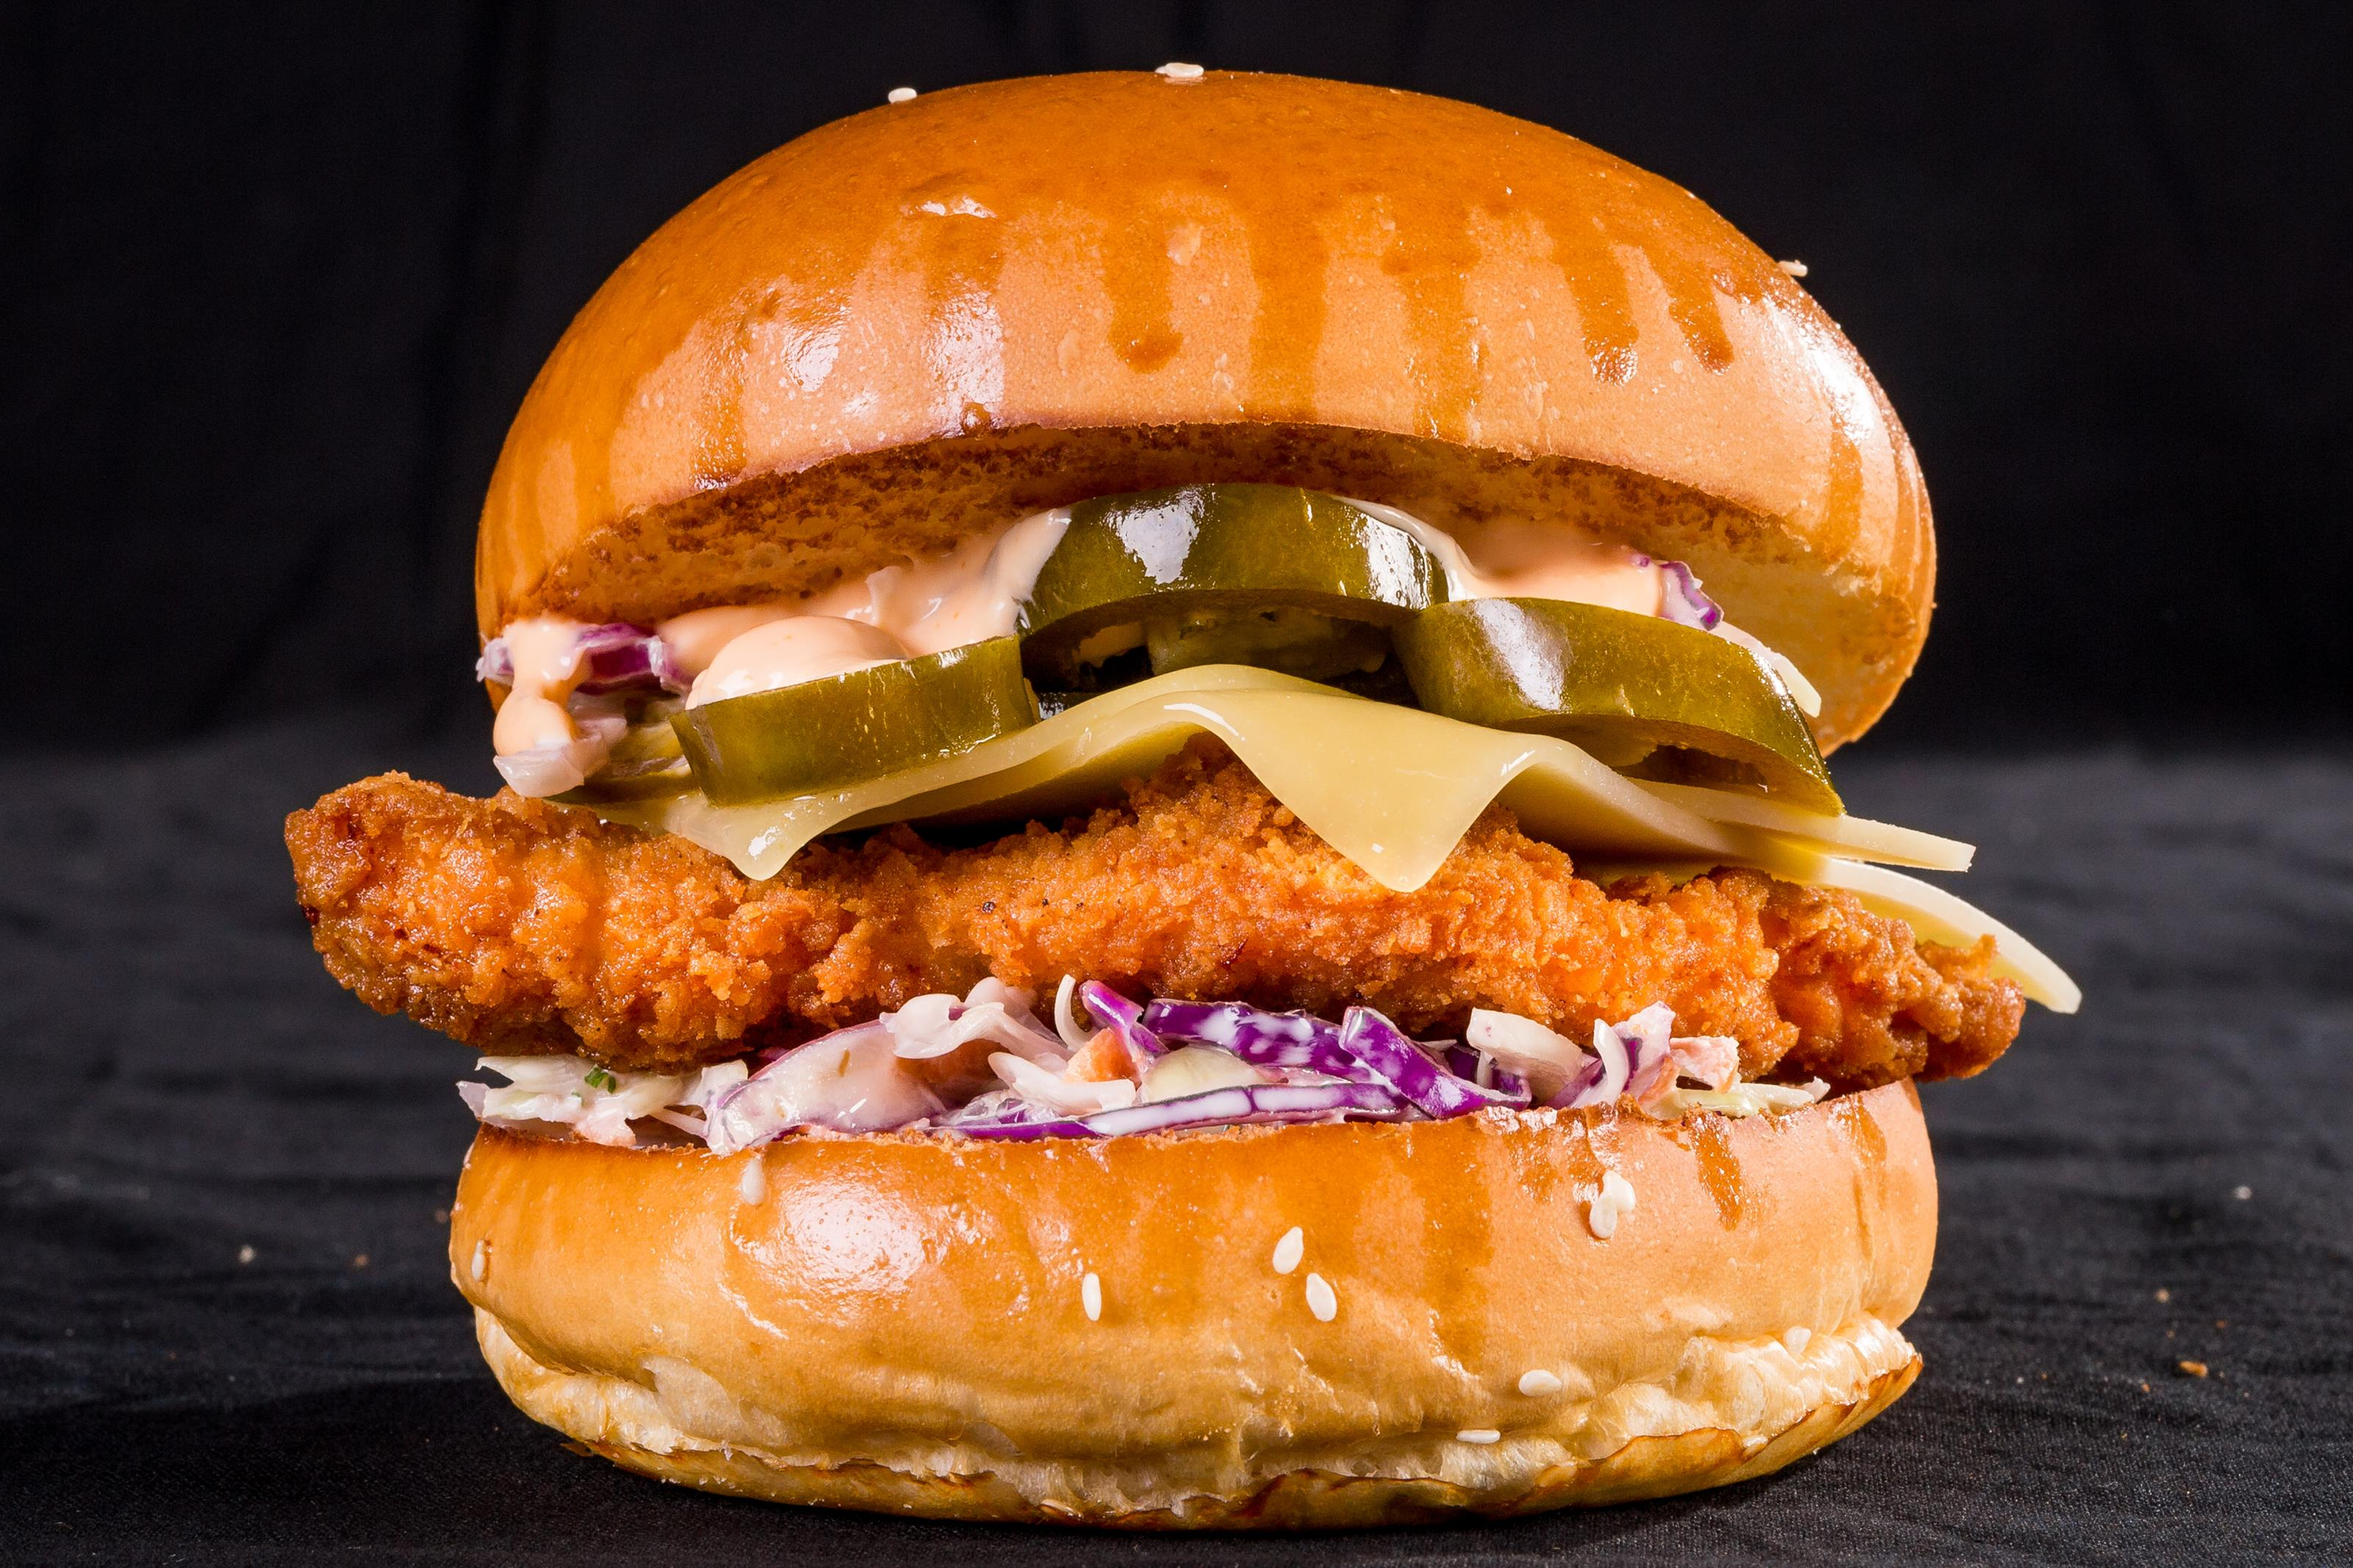 spicy chicken sandwich with lettuce, tomato, cheese, red onion, pickles, slaw, and a homemade sauce